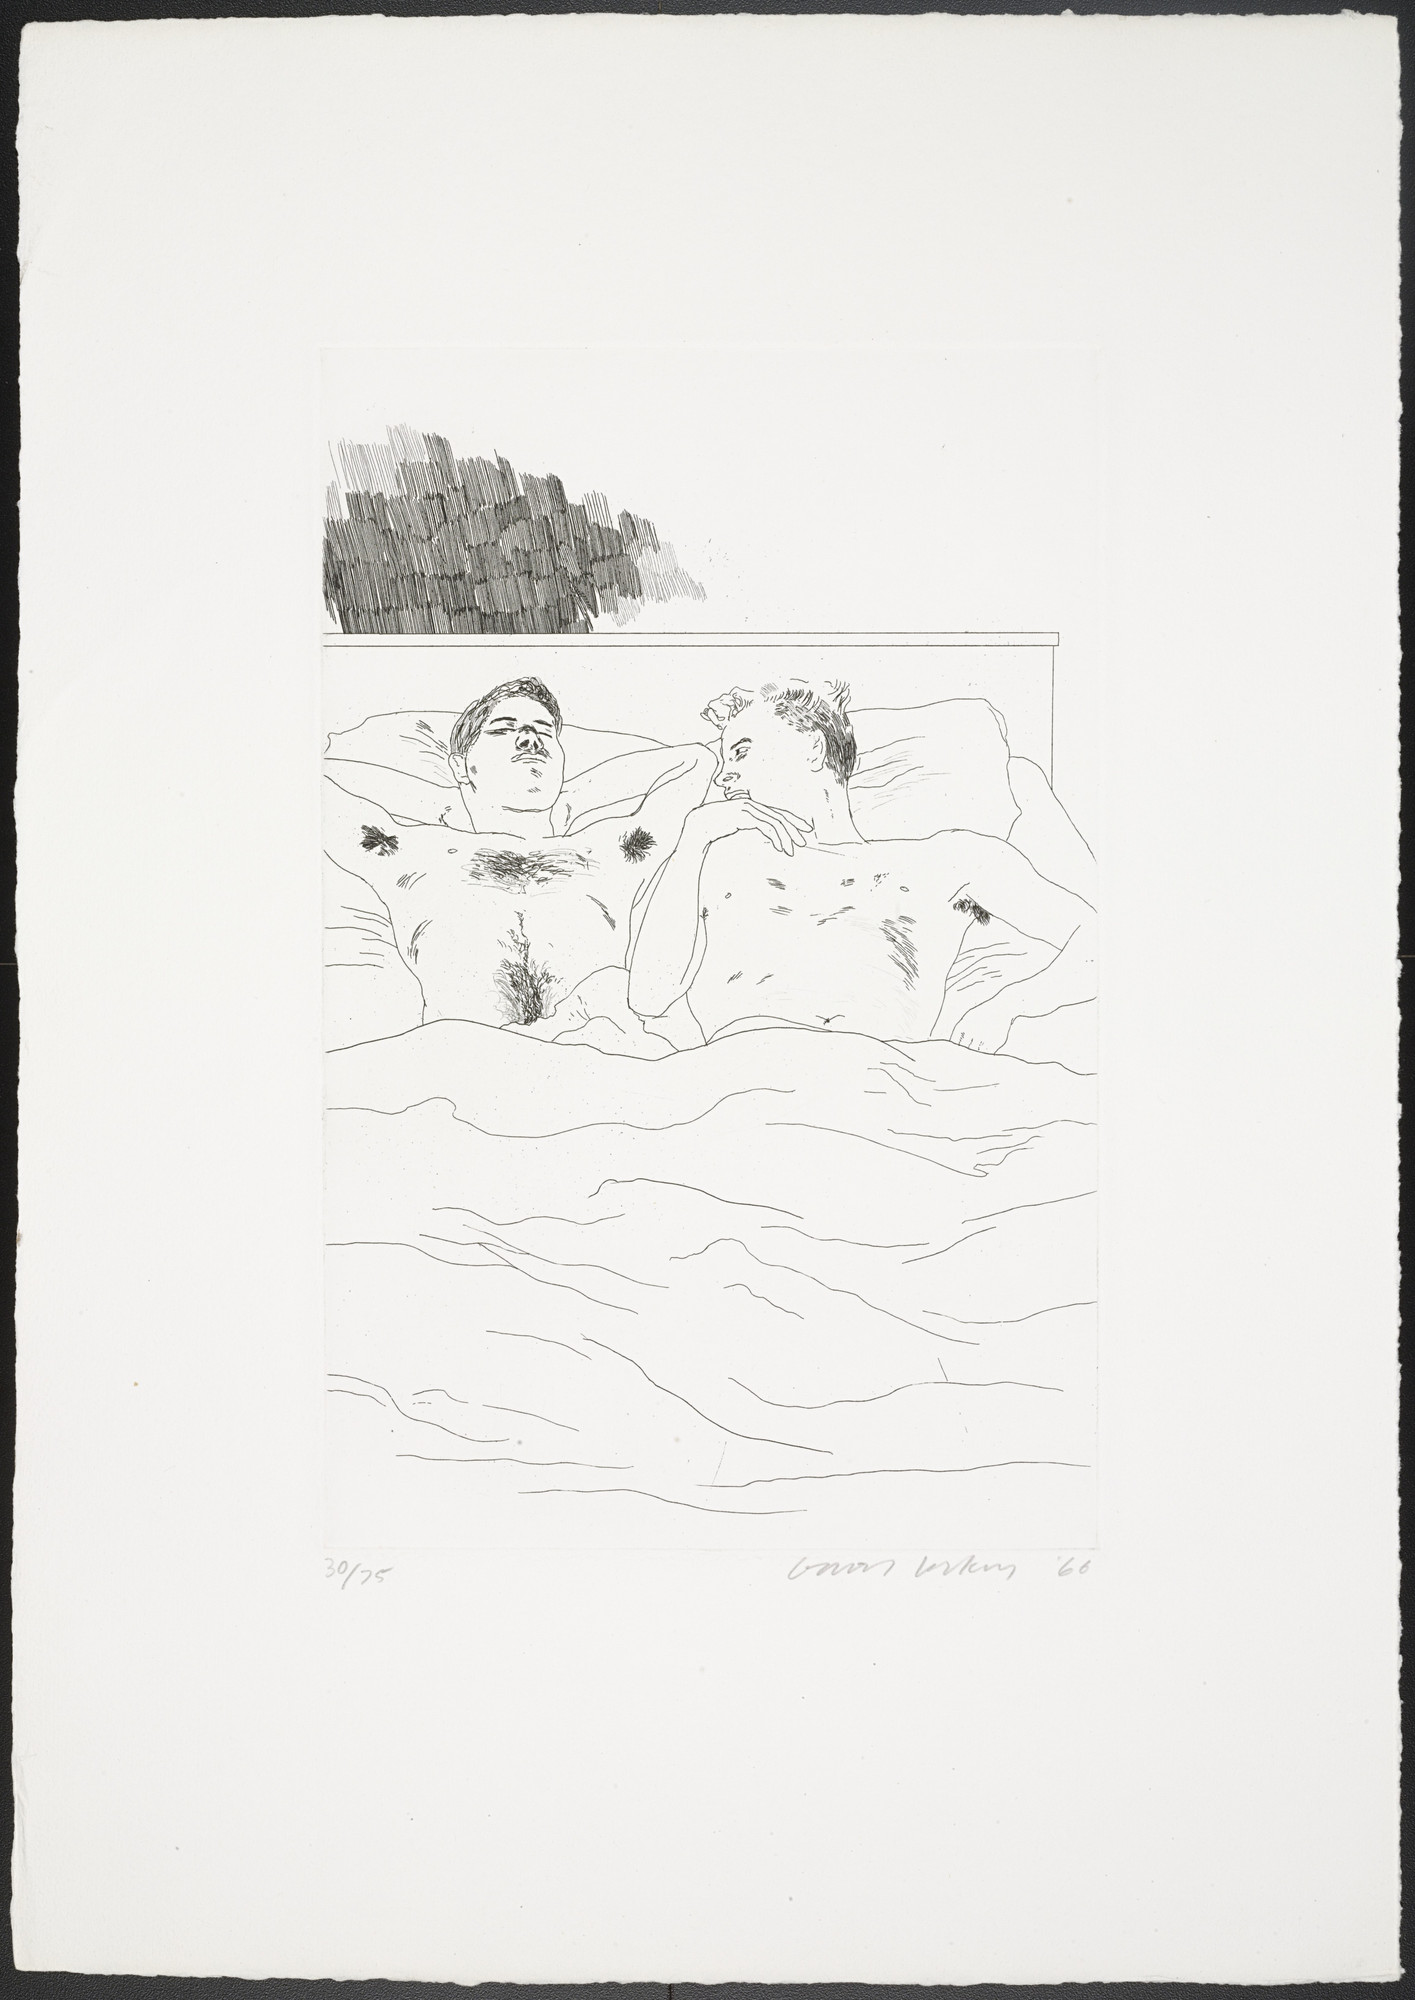 David Hockney. In the Dull Village from Fourteen Poems. 1966, published 1967